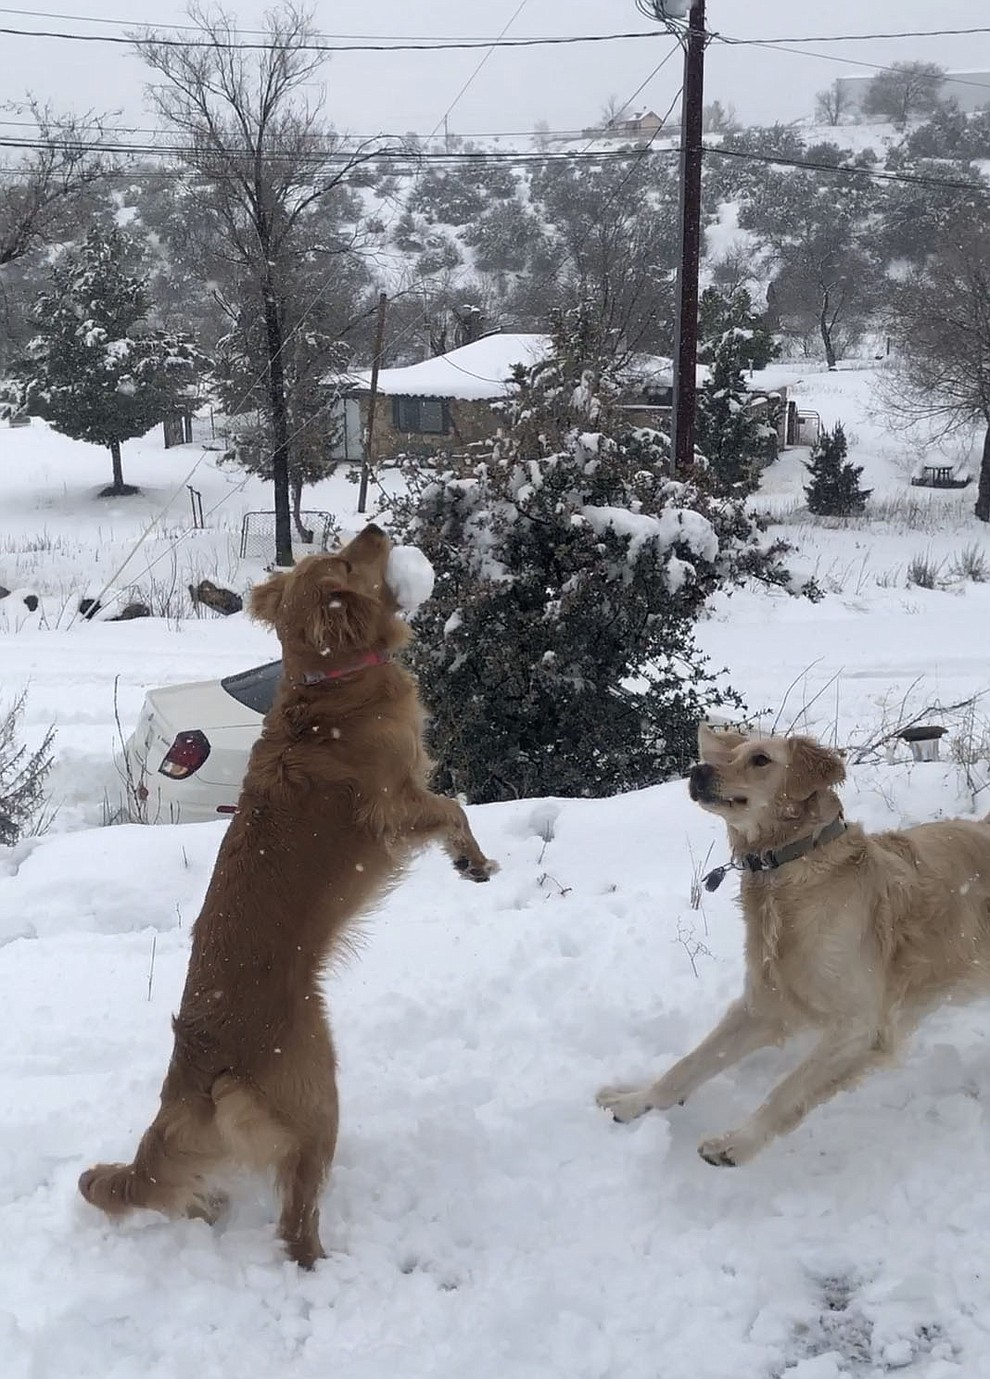 Daisy (jumping for the snowball) and her big brother Gatsby having fun in the snow.